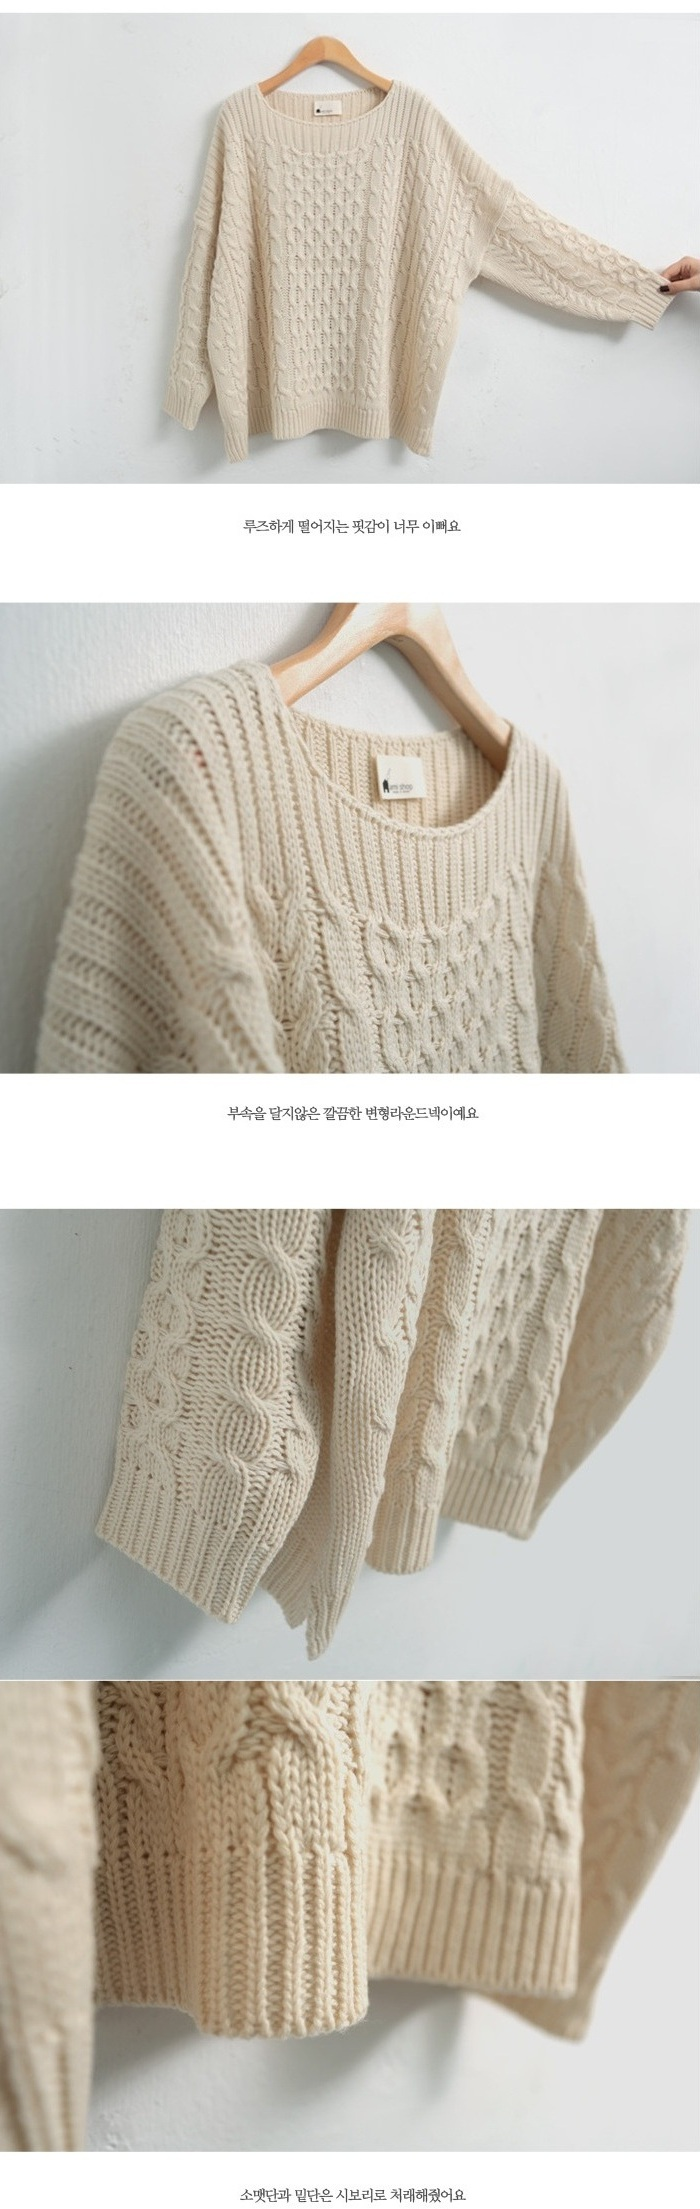 Ami - Parisian knit sweater - 3